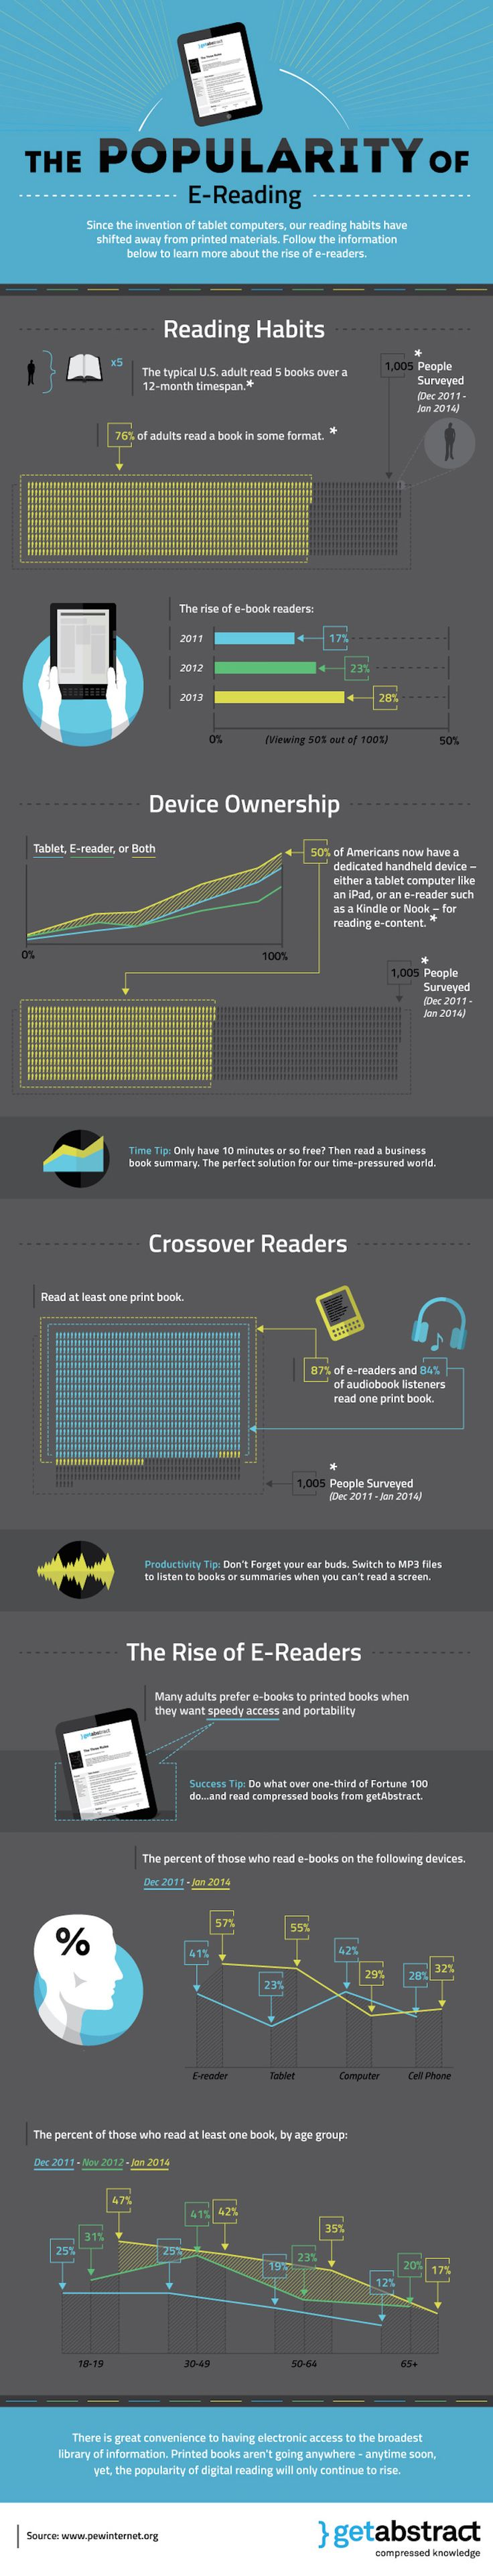 The Growing Popularity Of Ereading #infographic #technology